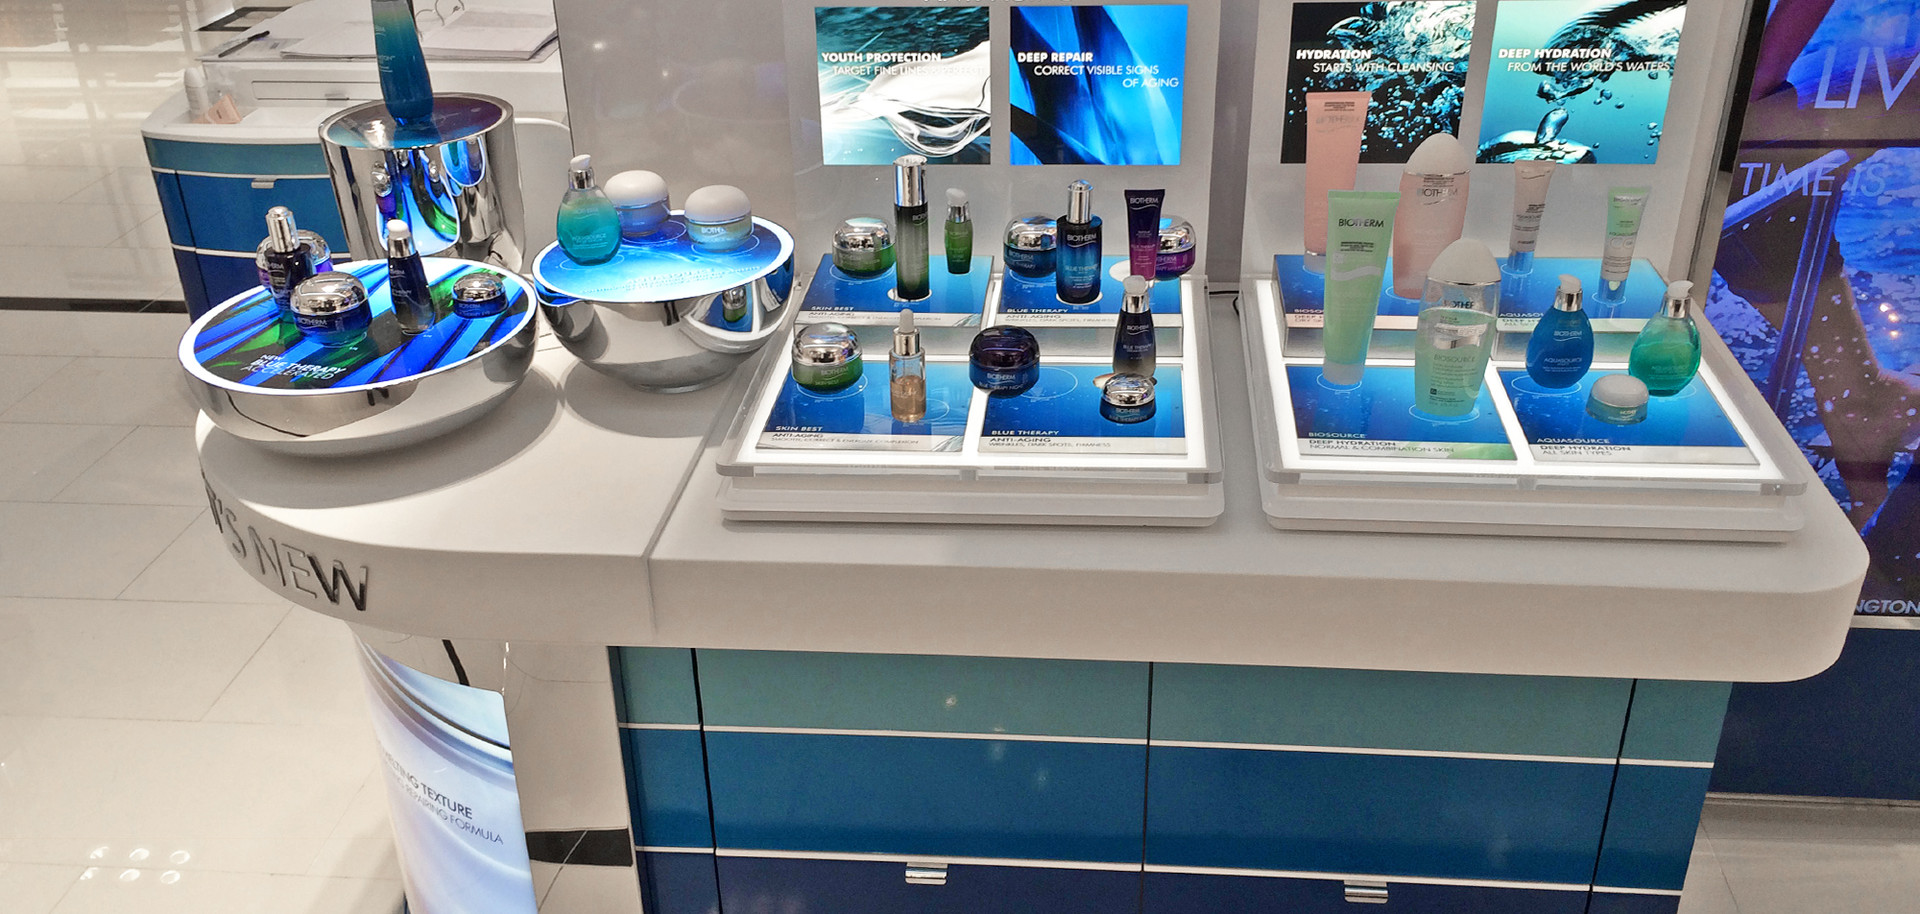 Biotherm product display counter